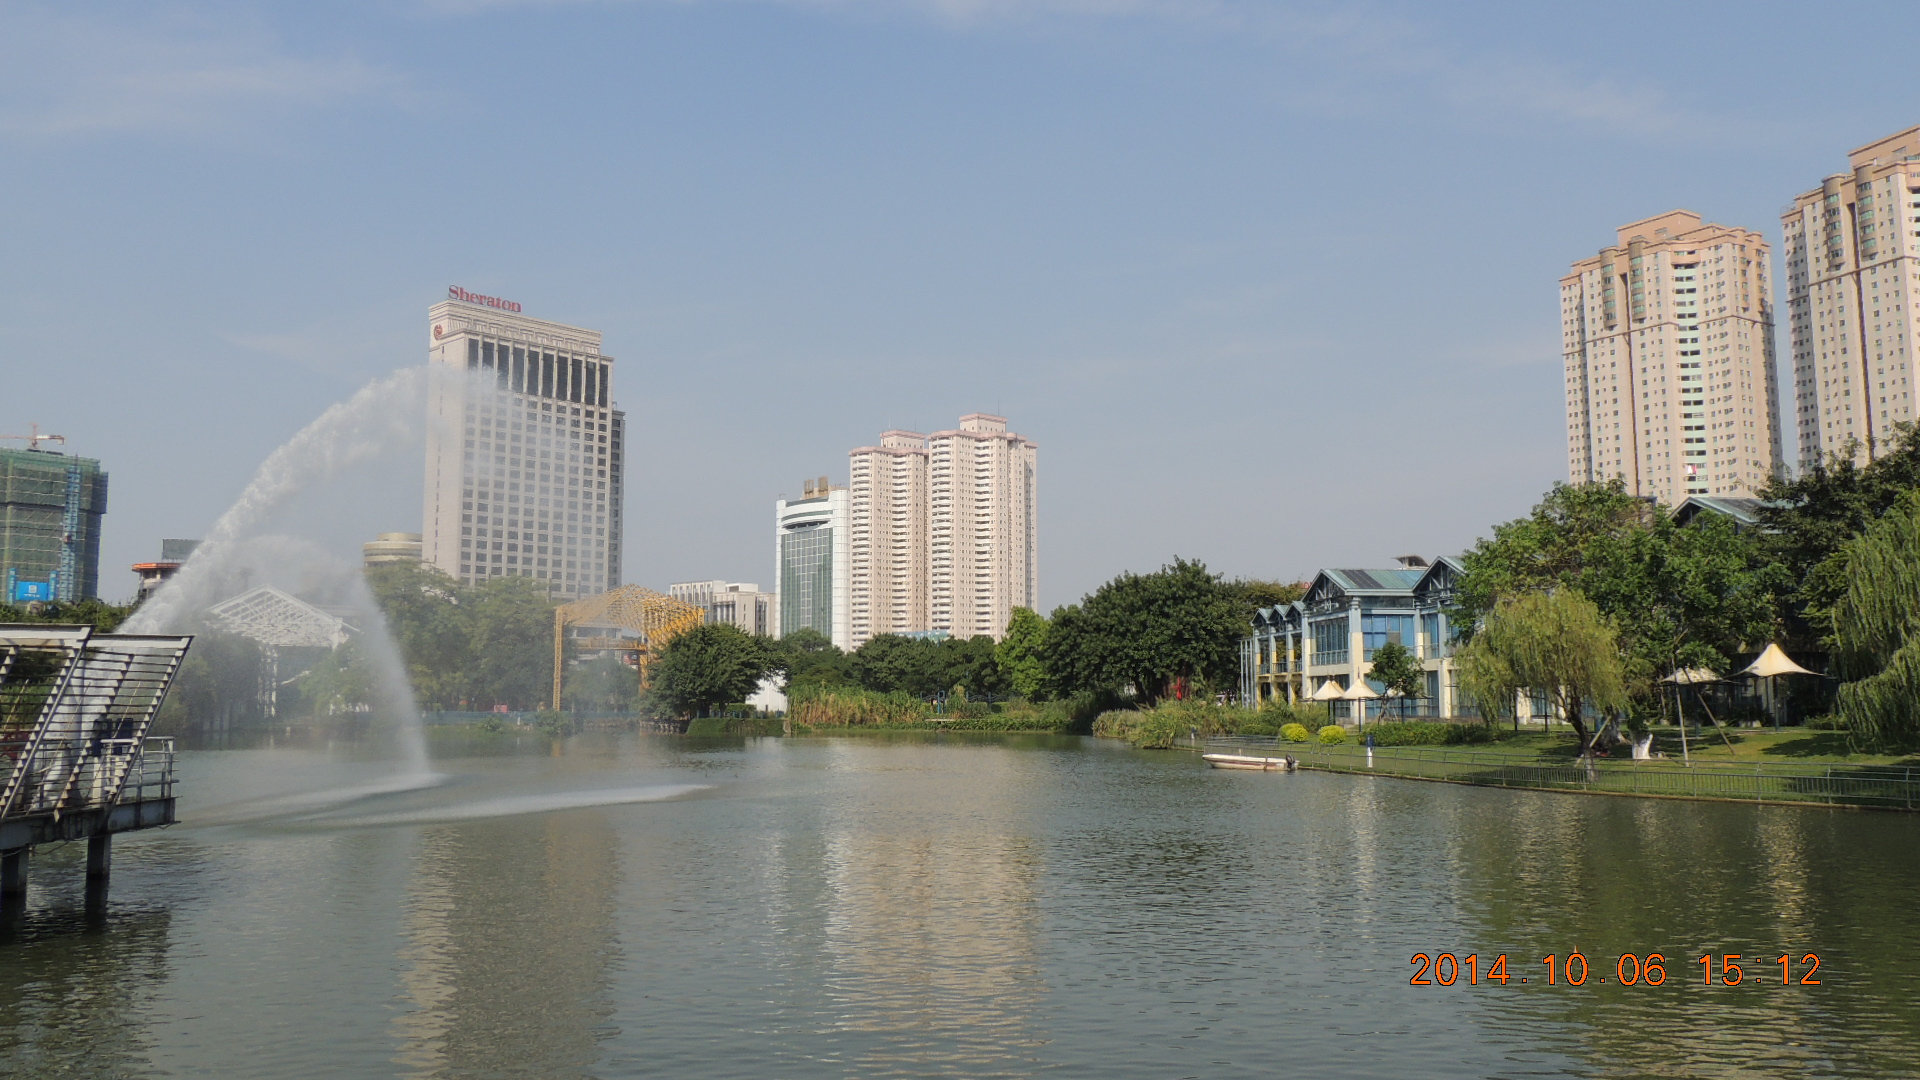 Zhongshan guangdong china